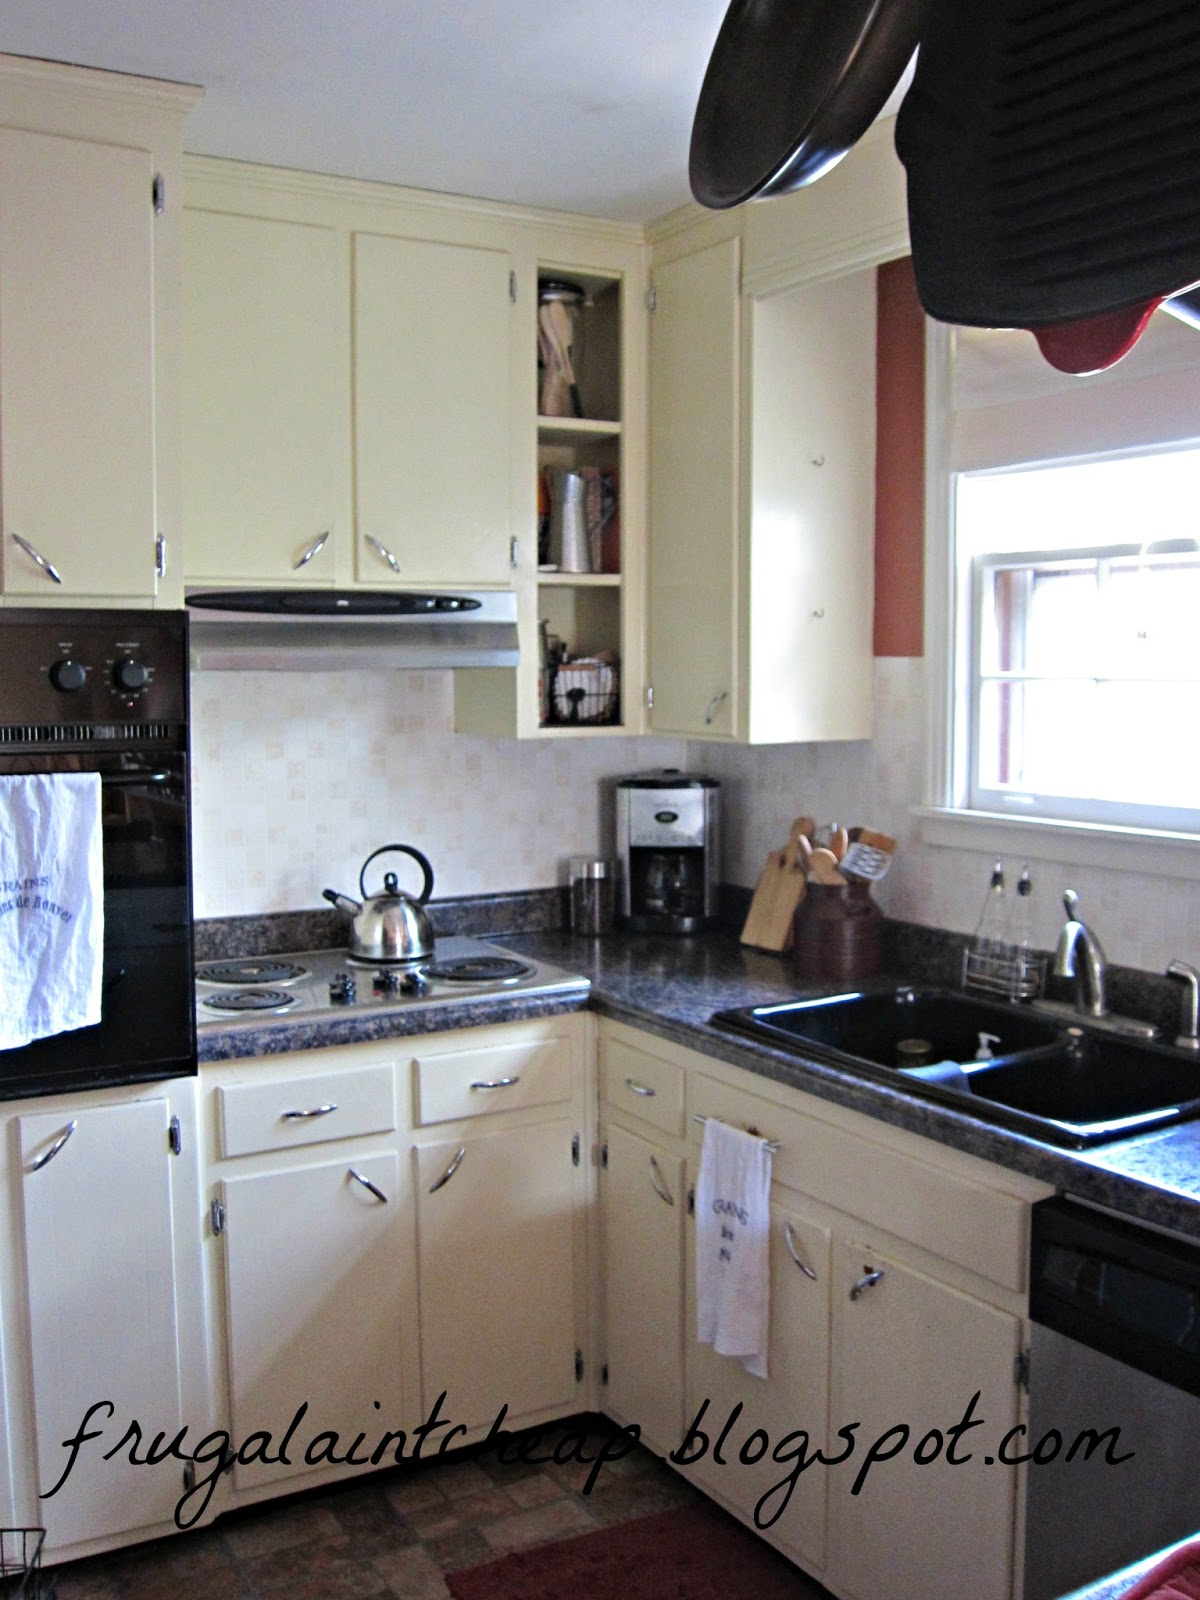 wallpaper kitchen backsplash remodel home depot frugal ain 39t cheap great for renters too